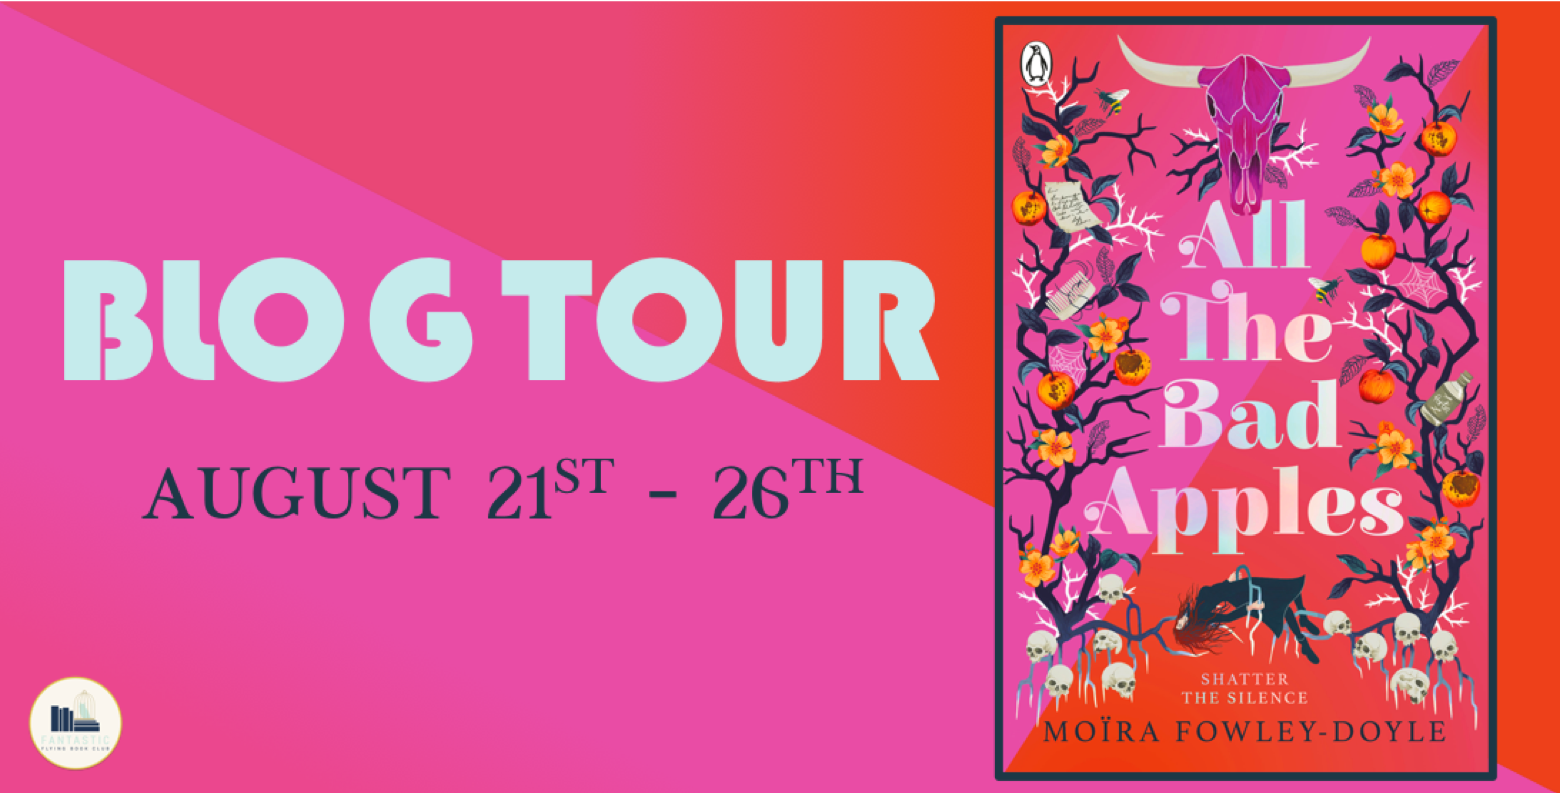 Blog Tour: All the Bad Apples by Moïra Fowley-Doyle (Promo + Giveaway!)